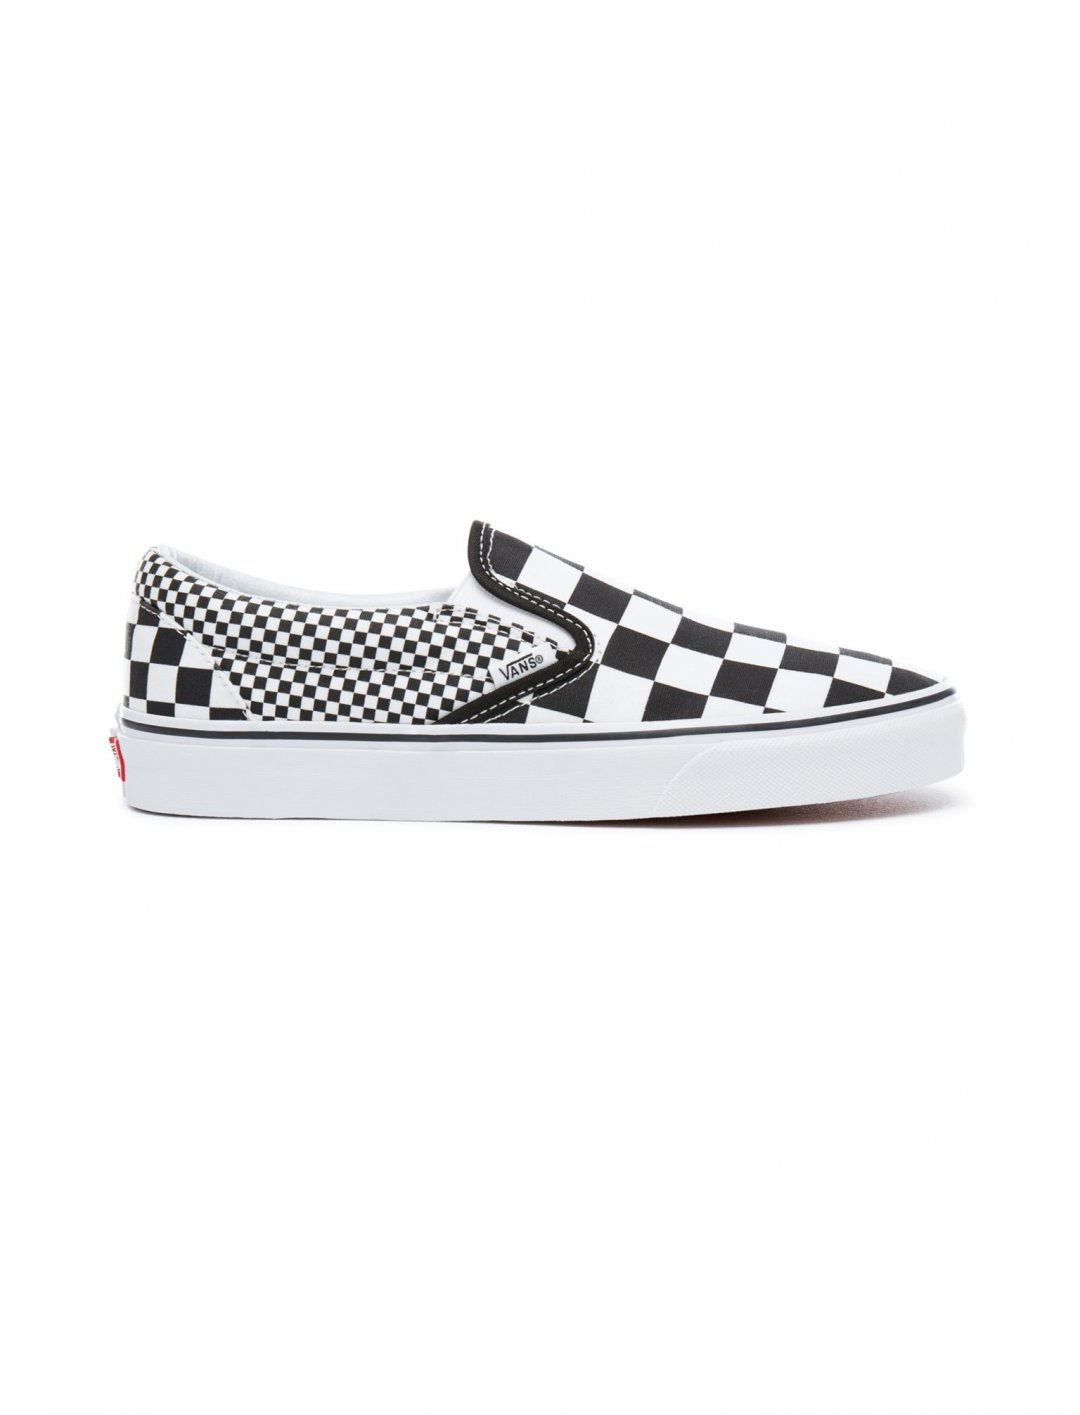 "Justin Bieber's Slip-On Shoes {""id"":12,""product_section_id"":1,""name"":""Shoes"",""order"":12} Vans"